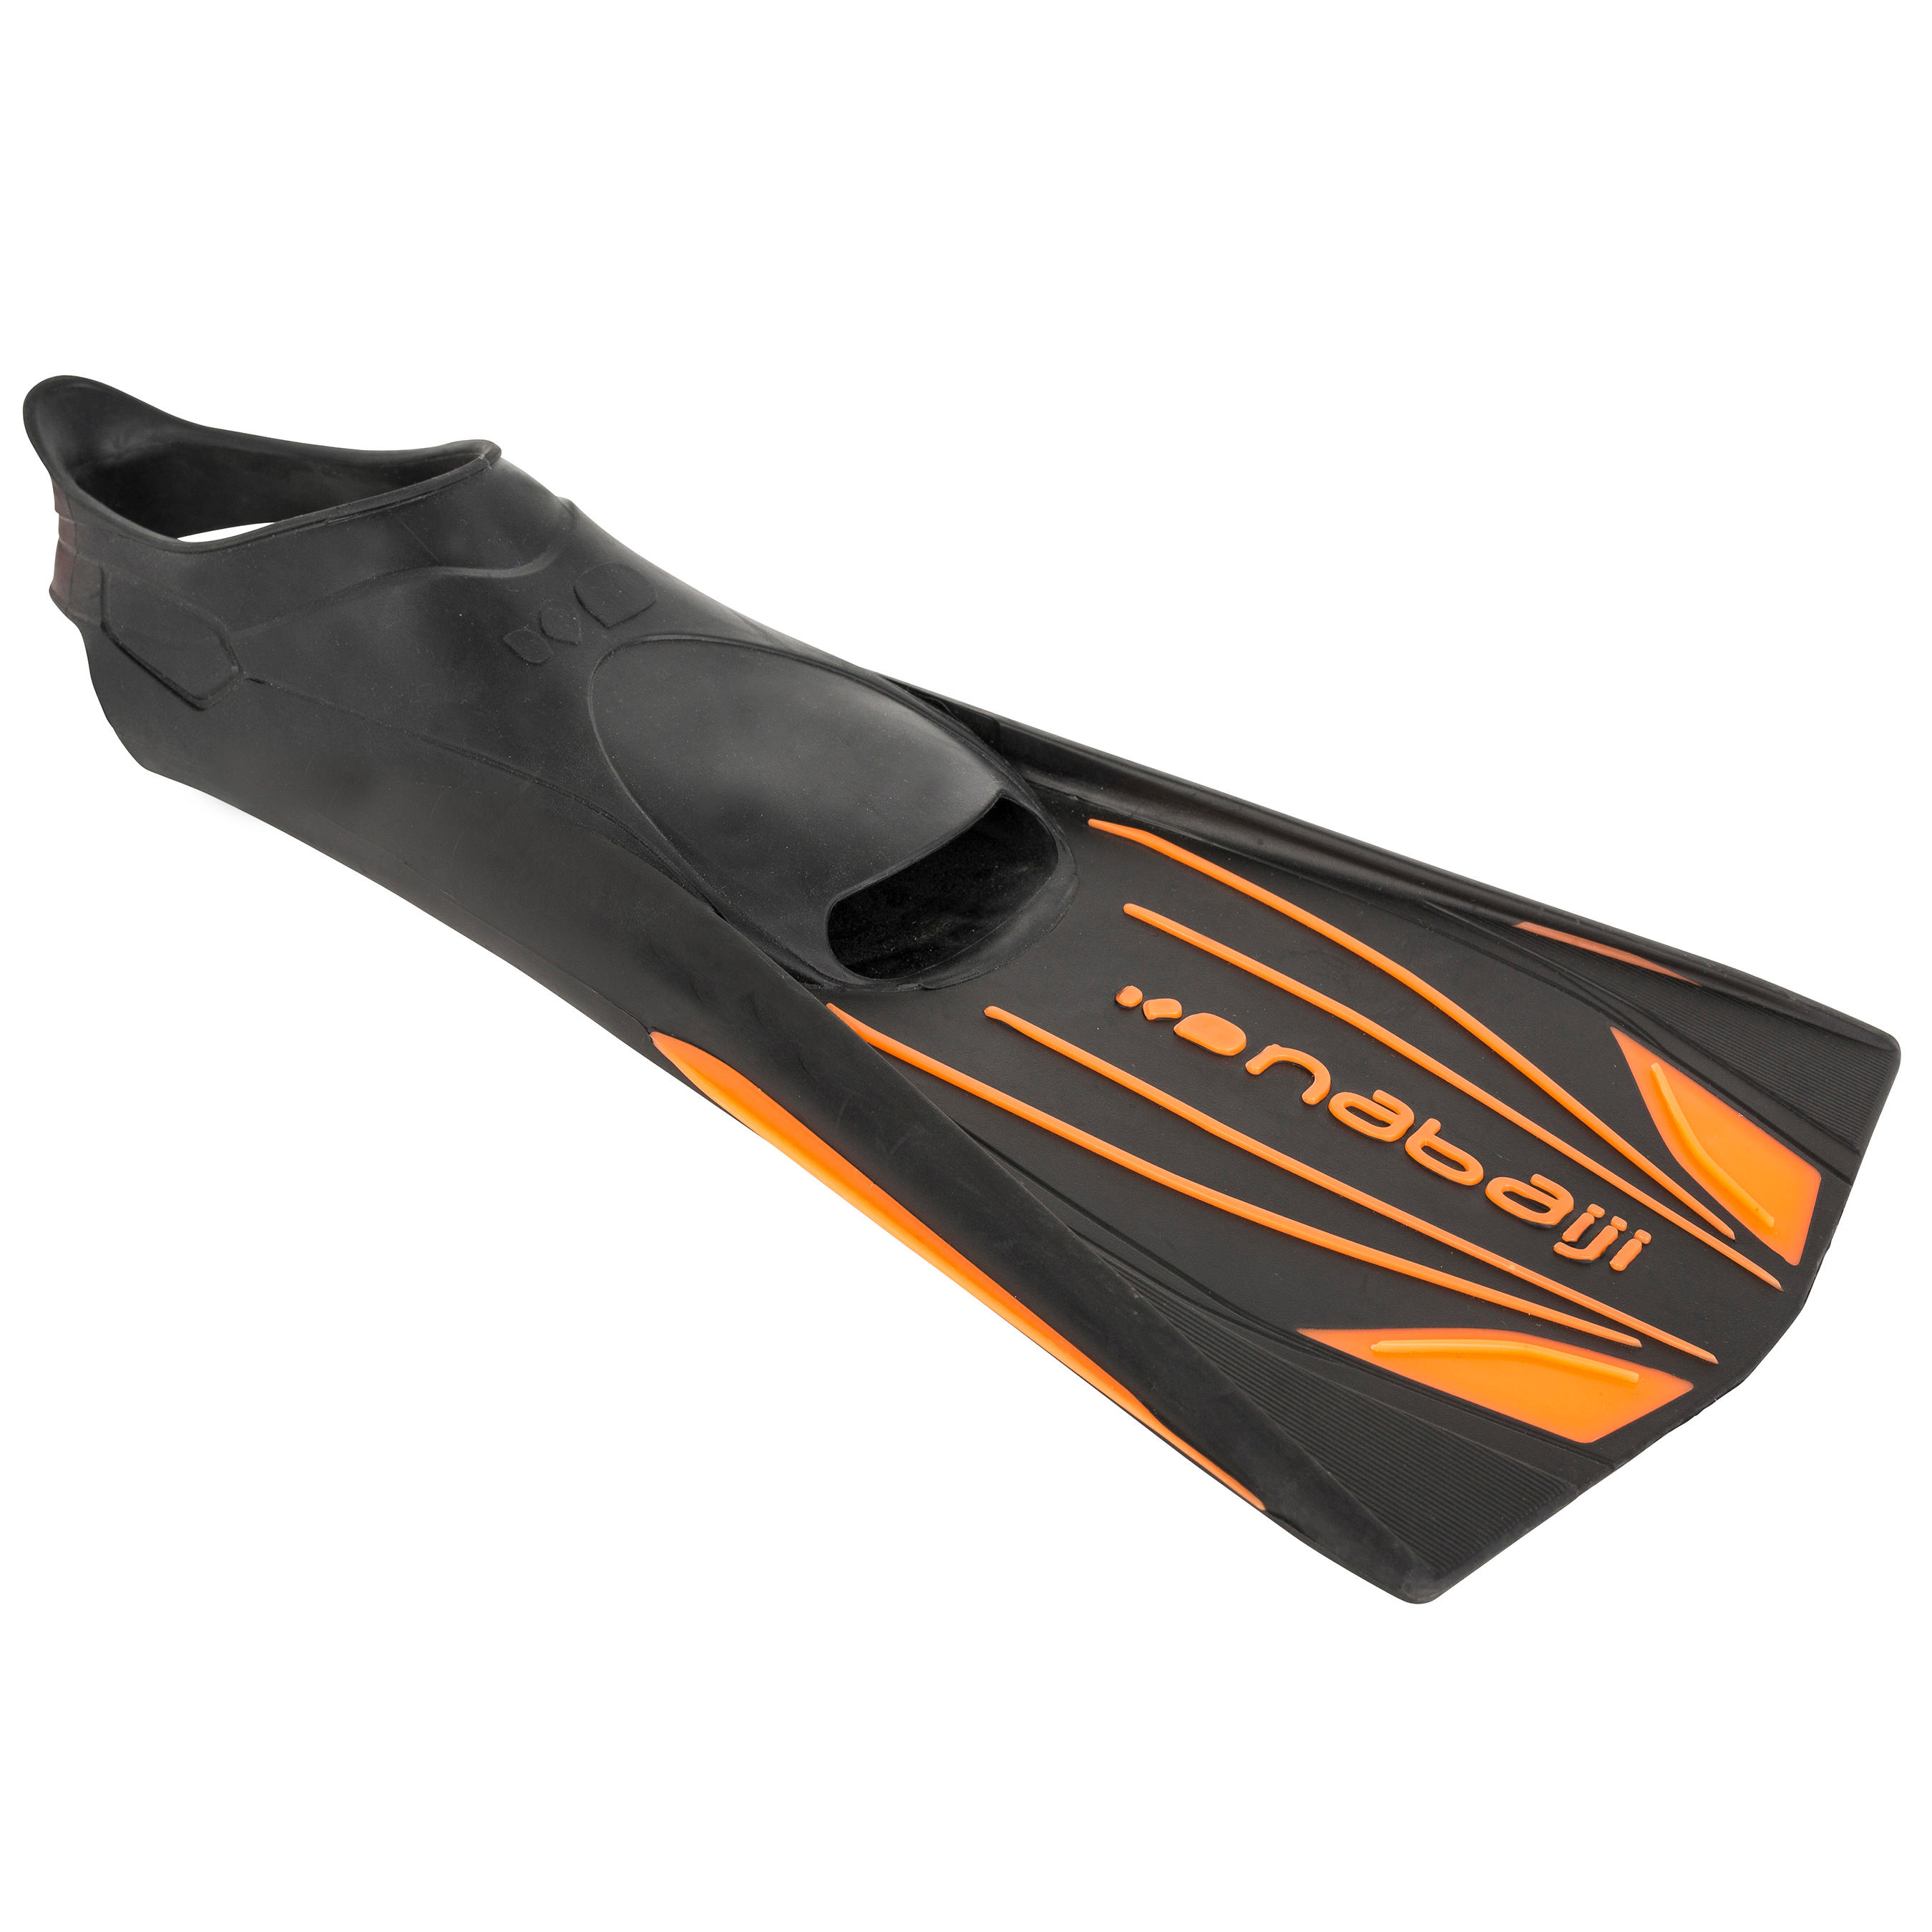 Topfins Long Rigid...